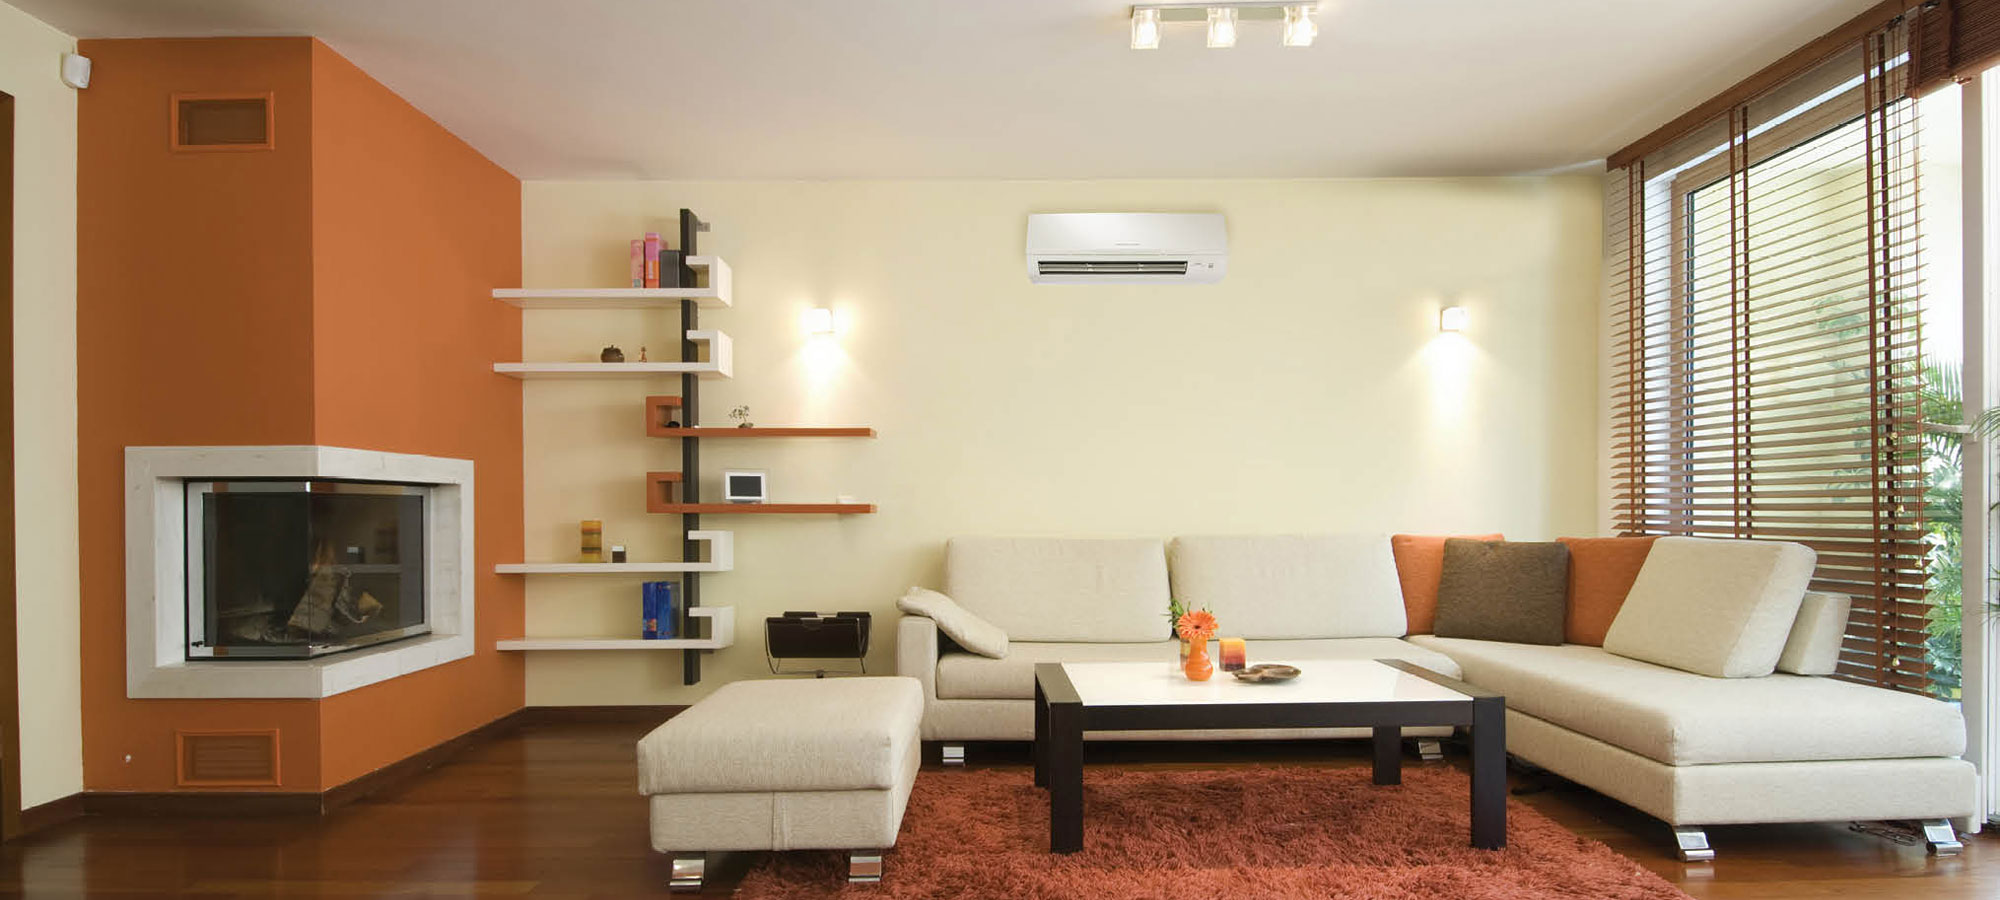 Ductless Living Room